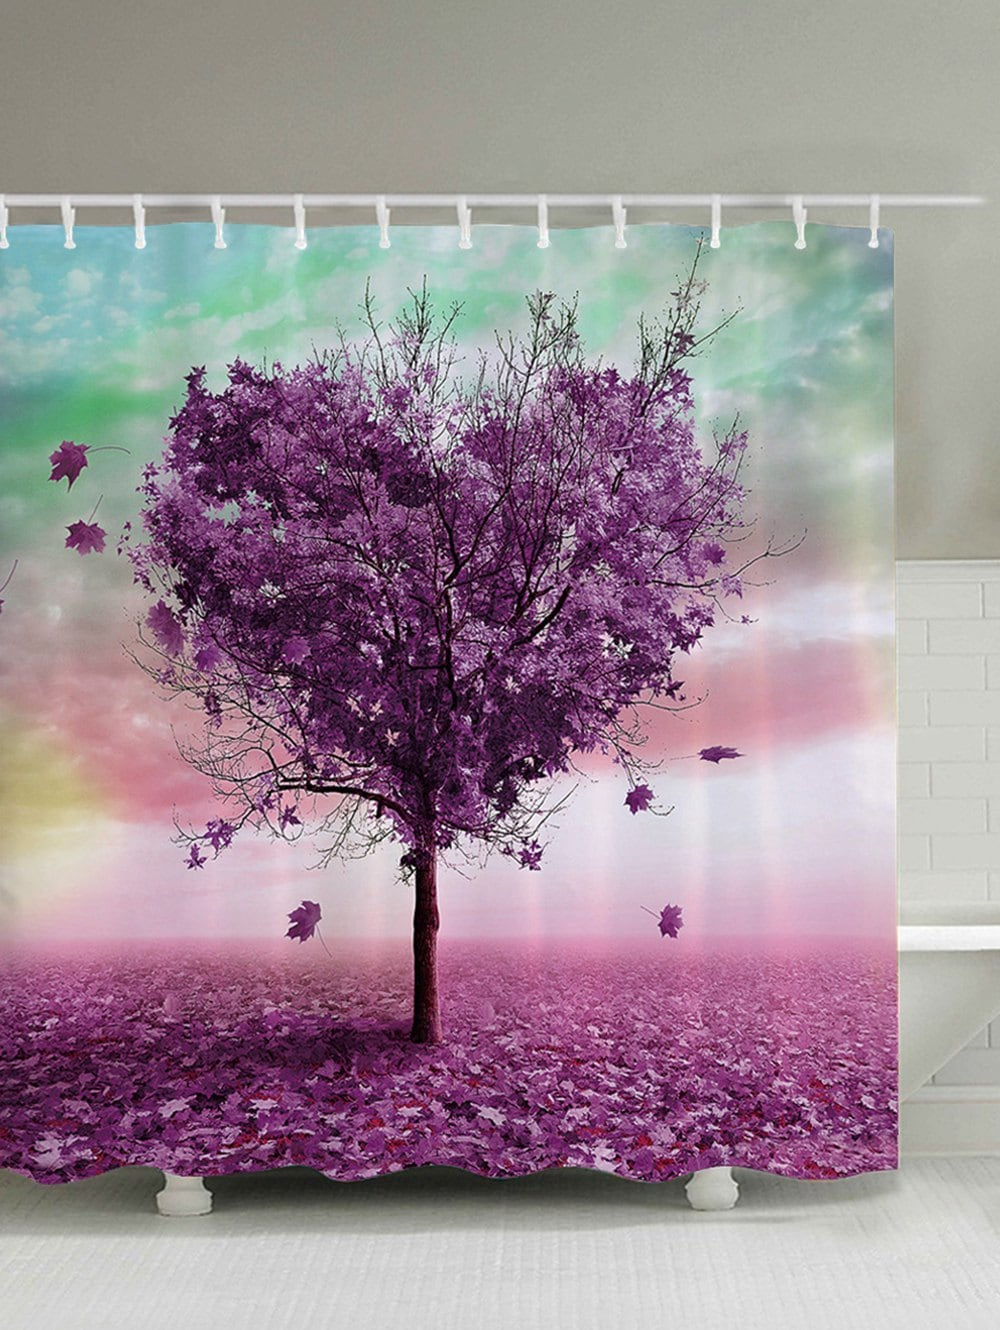 Purple Heart Shaped Tree Shower Curtain Autumn Bath Decor | GoJeek